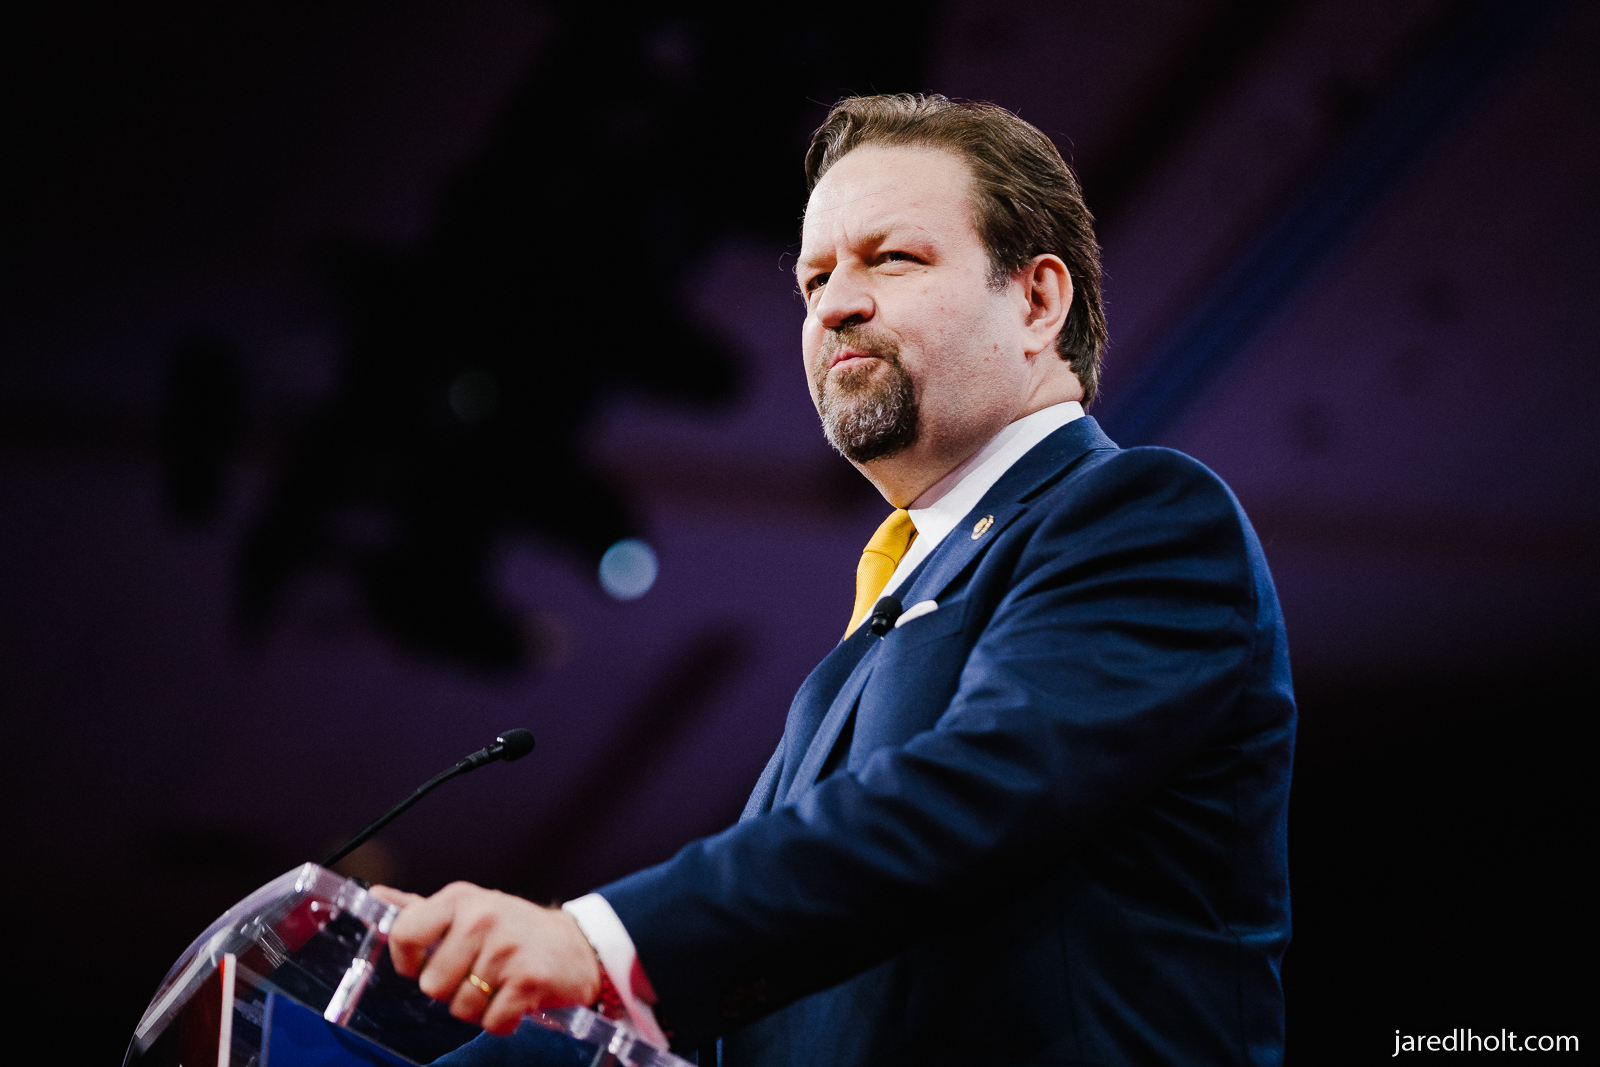 Dr. Sebastian Gorka, former White House aide and Salem Broadcast Network radio host